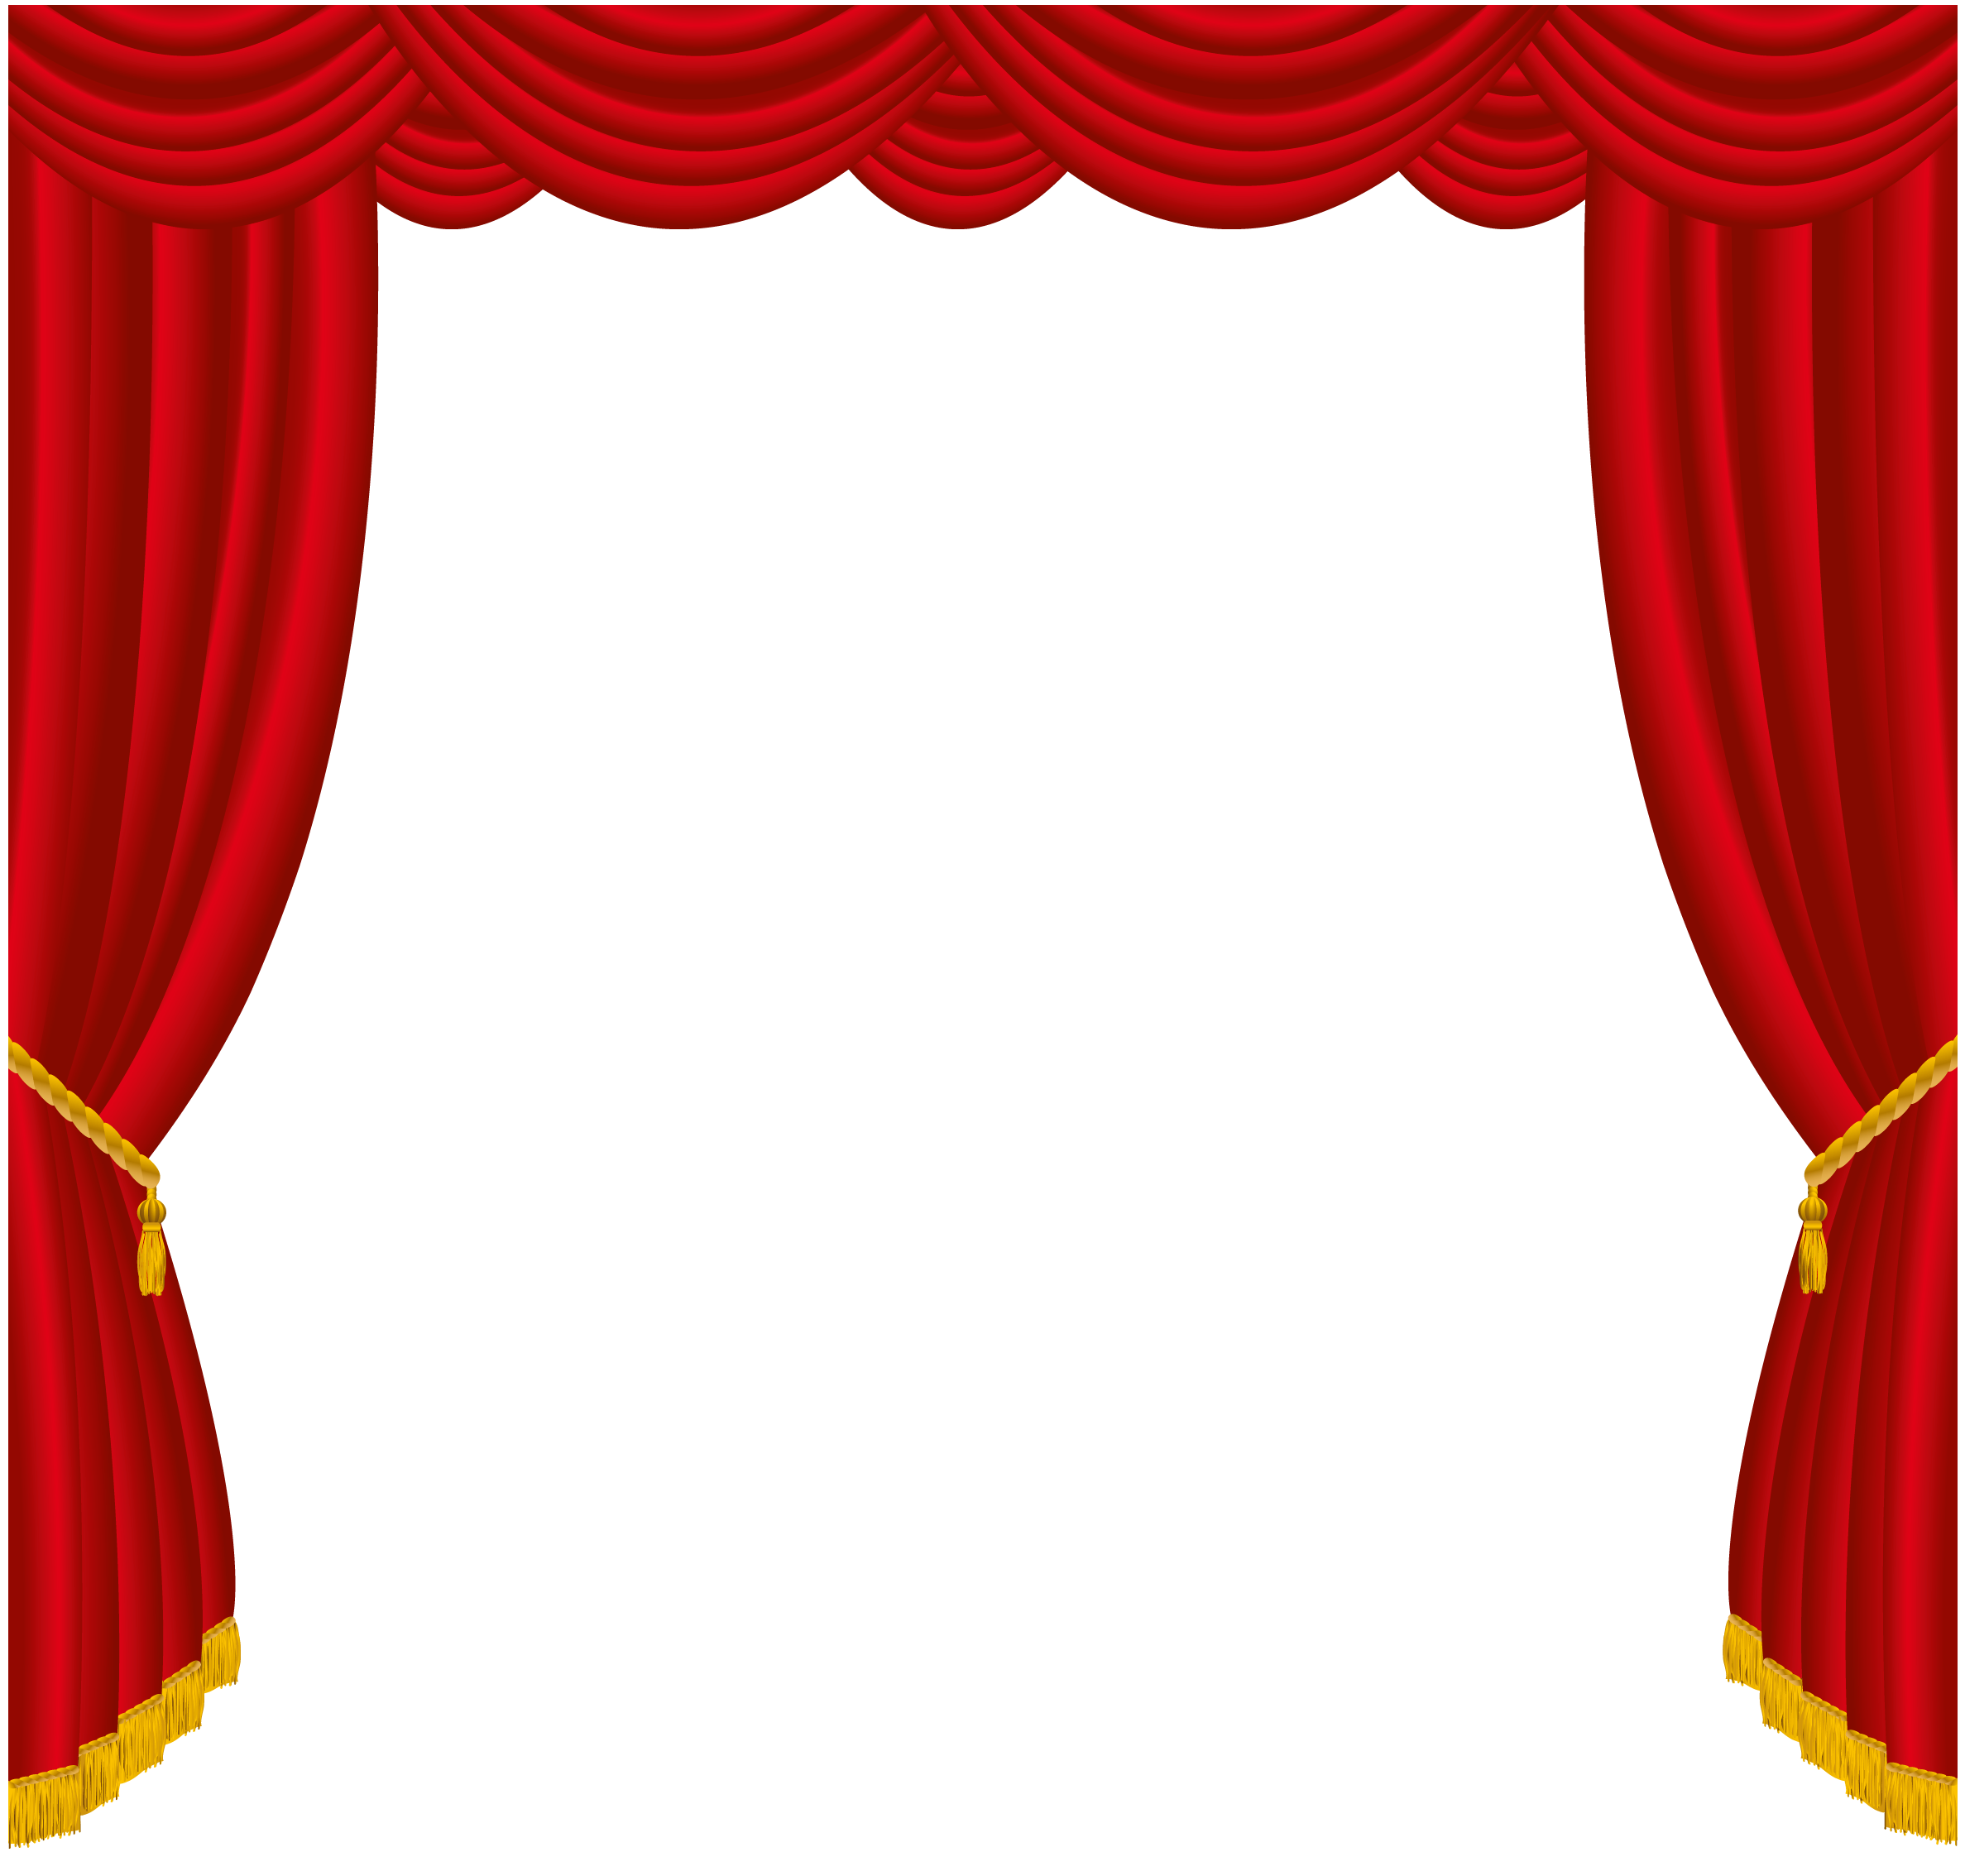 medium resolution of stage curtains red curtains paper curtain clipart gallery frame background background